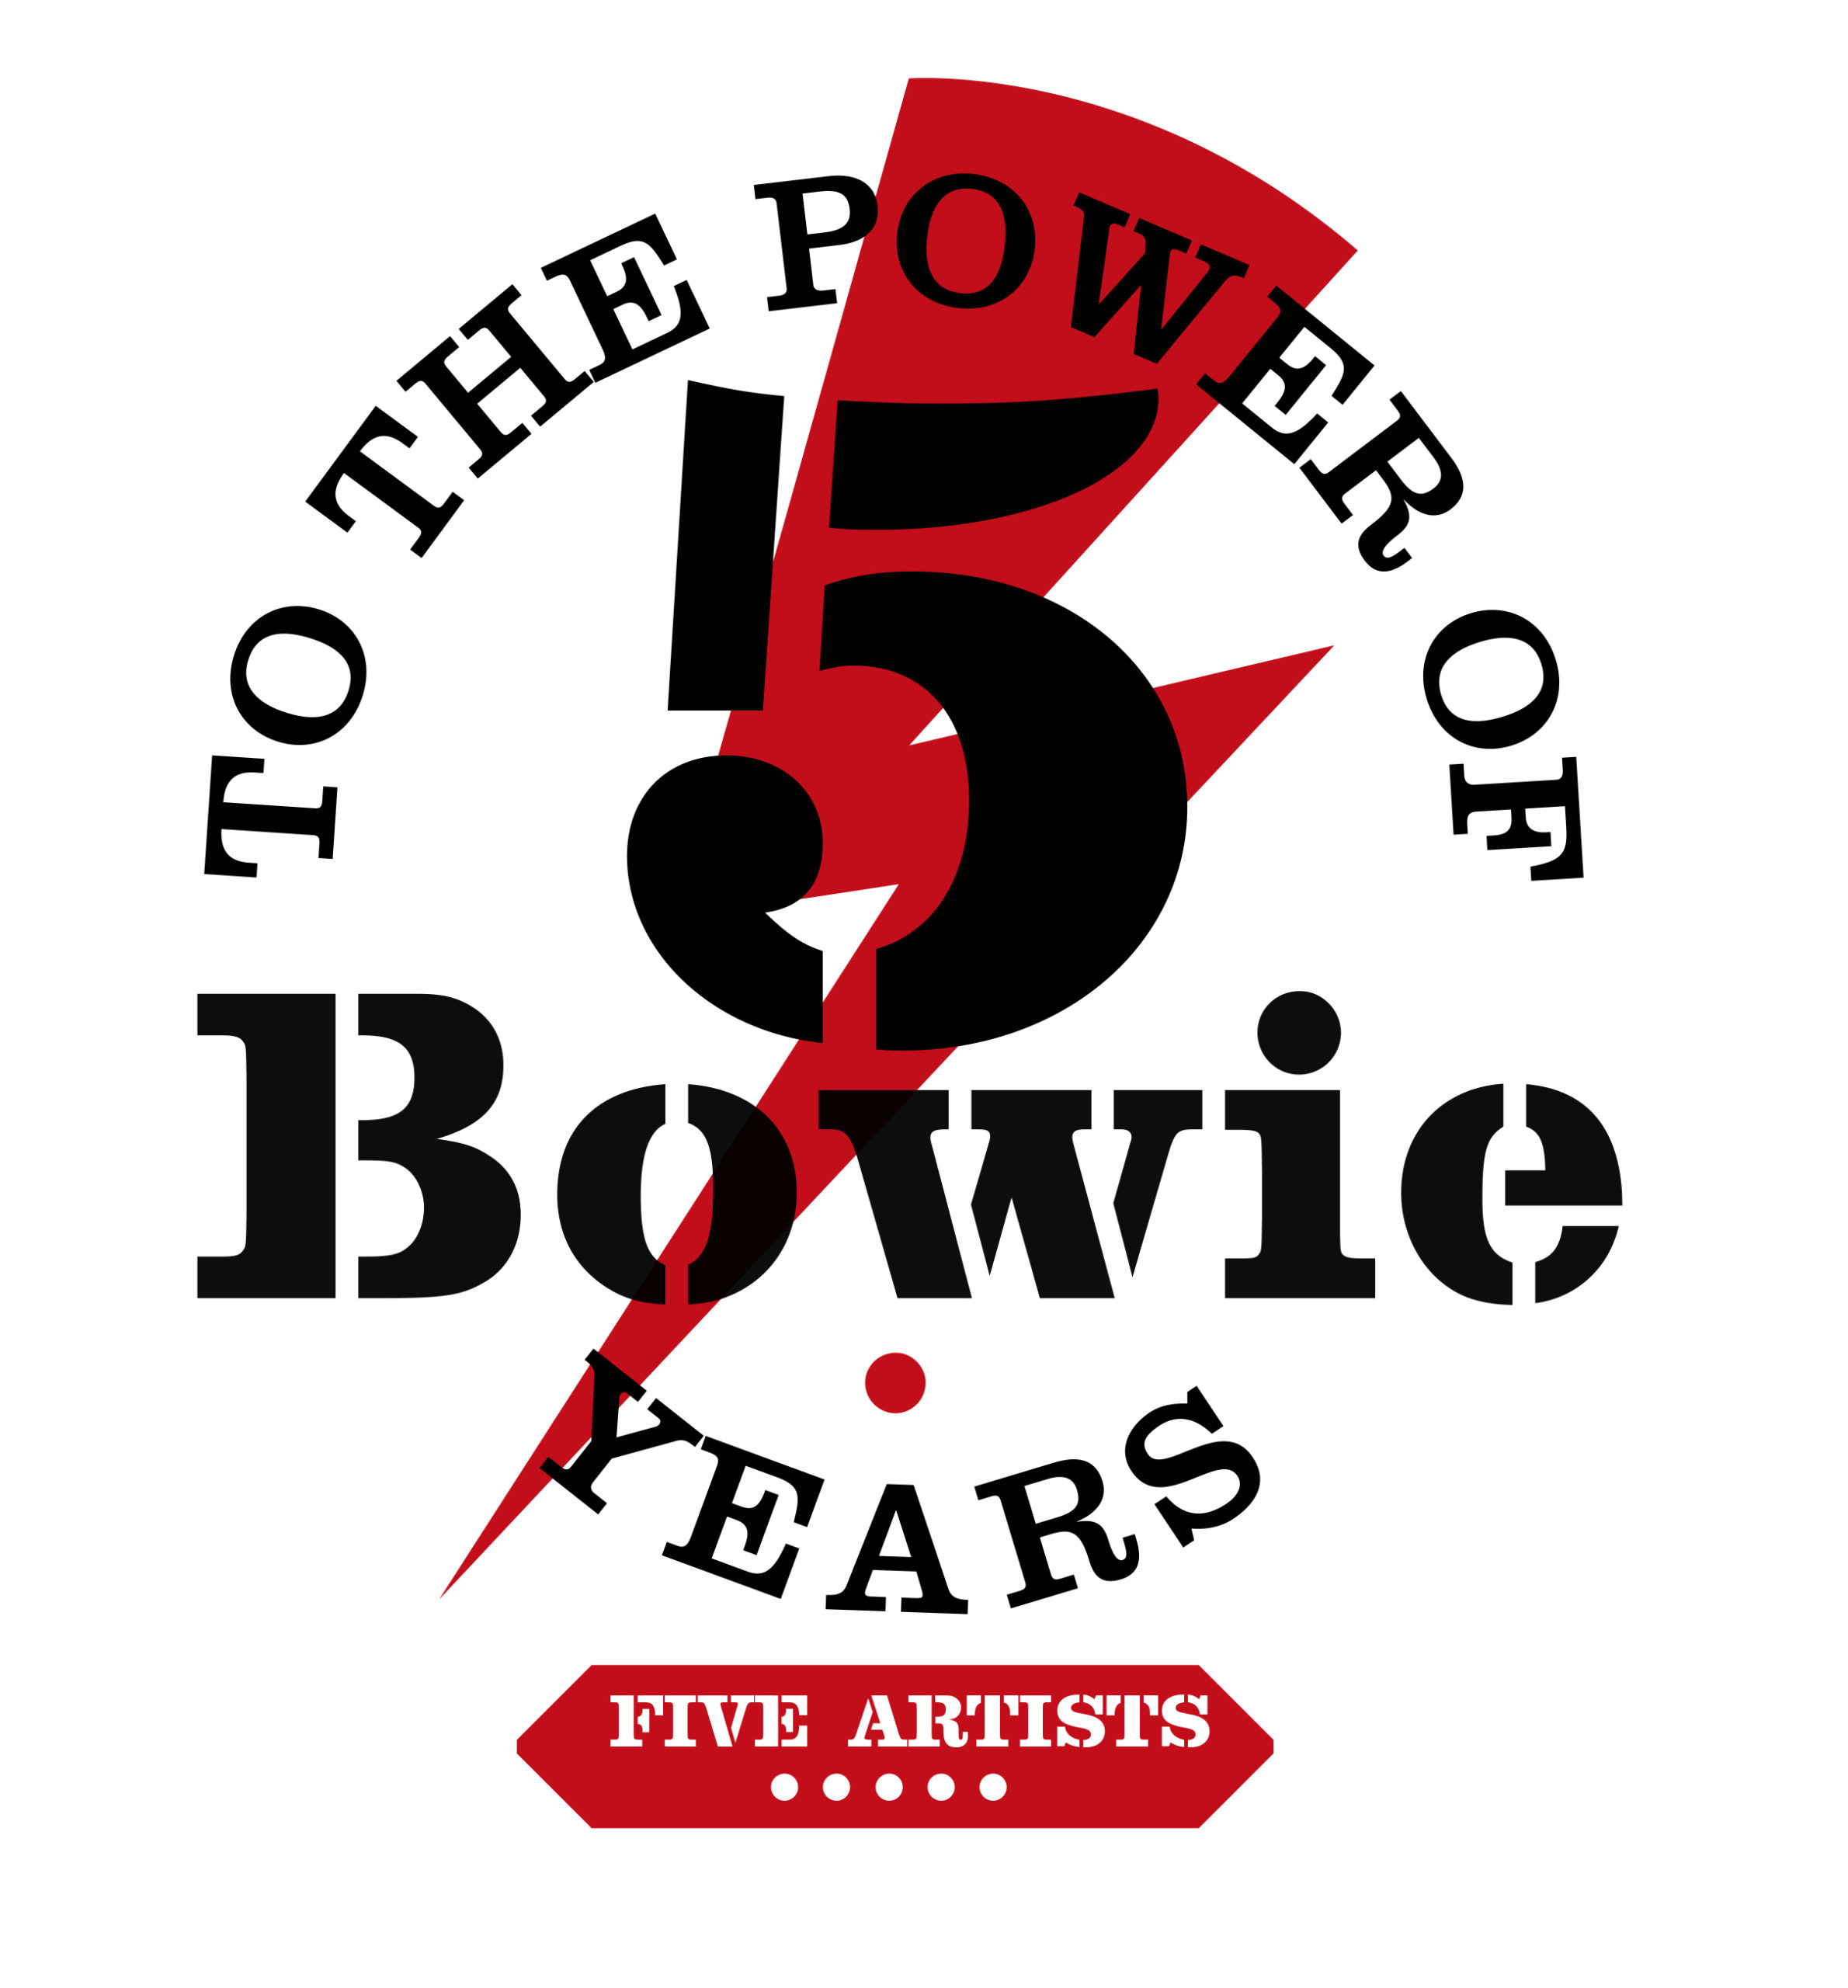 To the Power of Bowie - 5 Years - 5 Artists